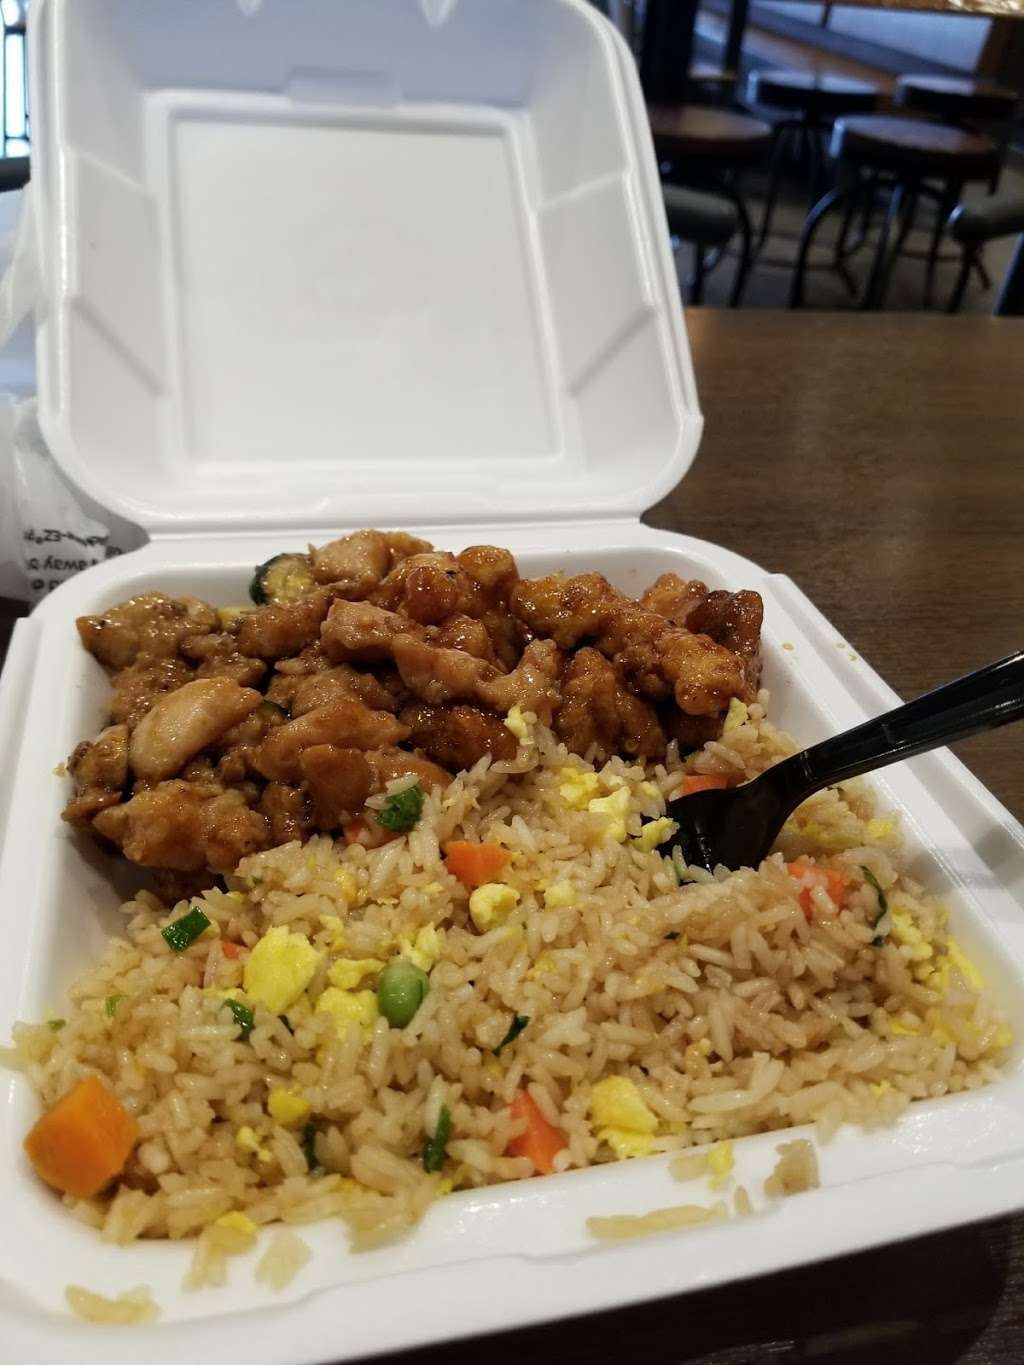 Panda Express - restaurant  | Photo 10 of 10 | Address: 1225 N Dupont Hwy, Dover, DE 19901, USA | Phone: (302) 734-4798